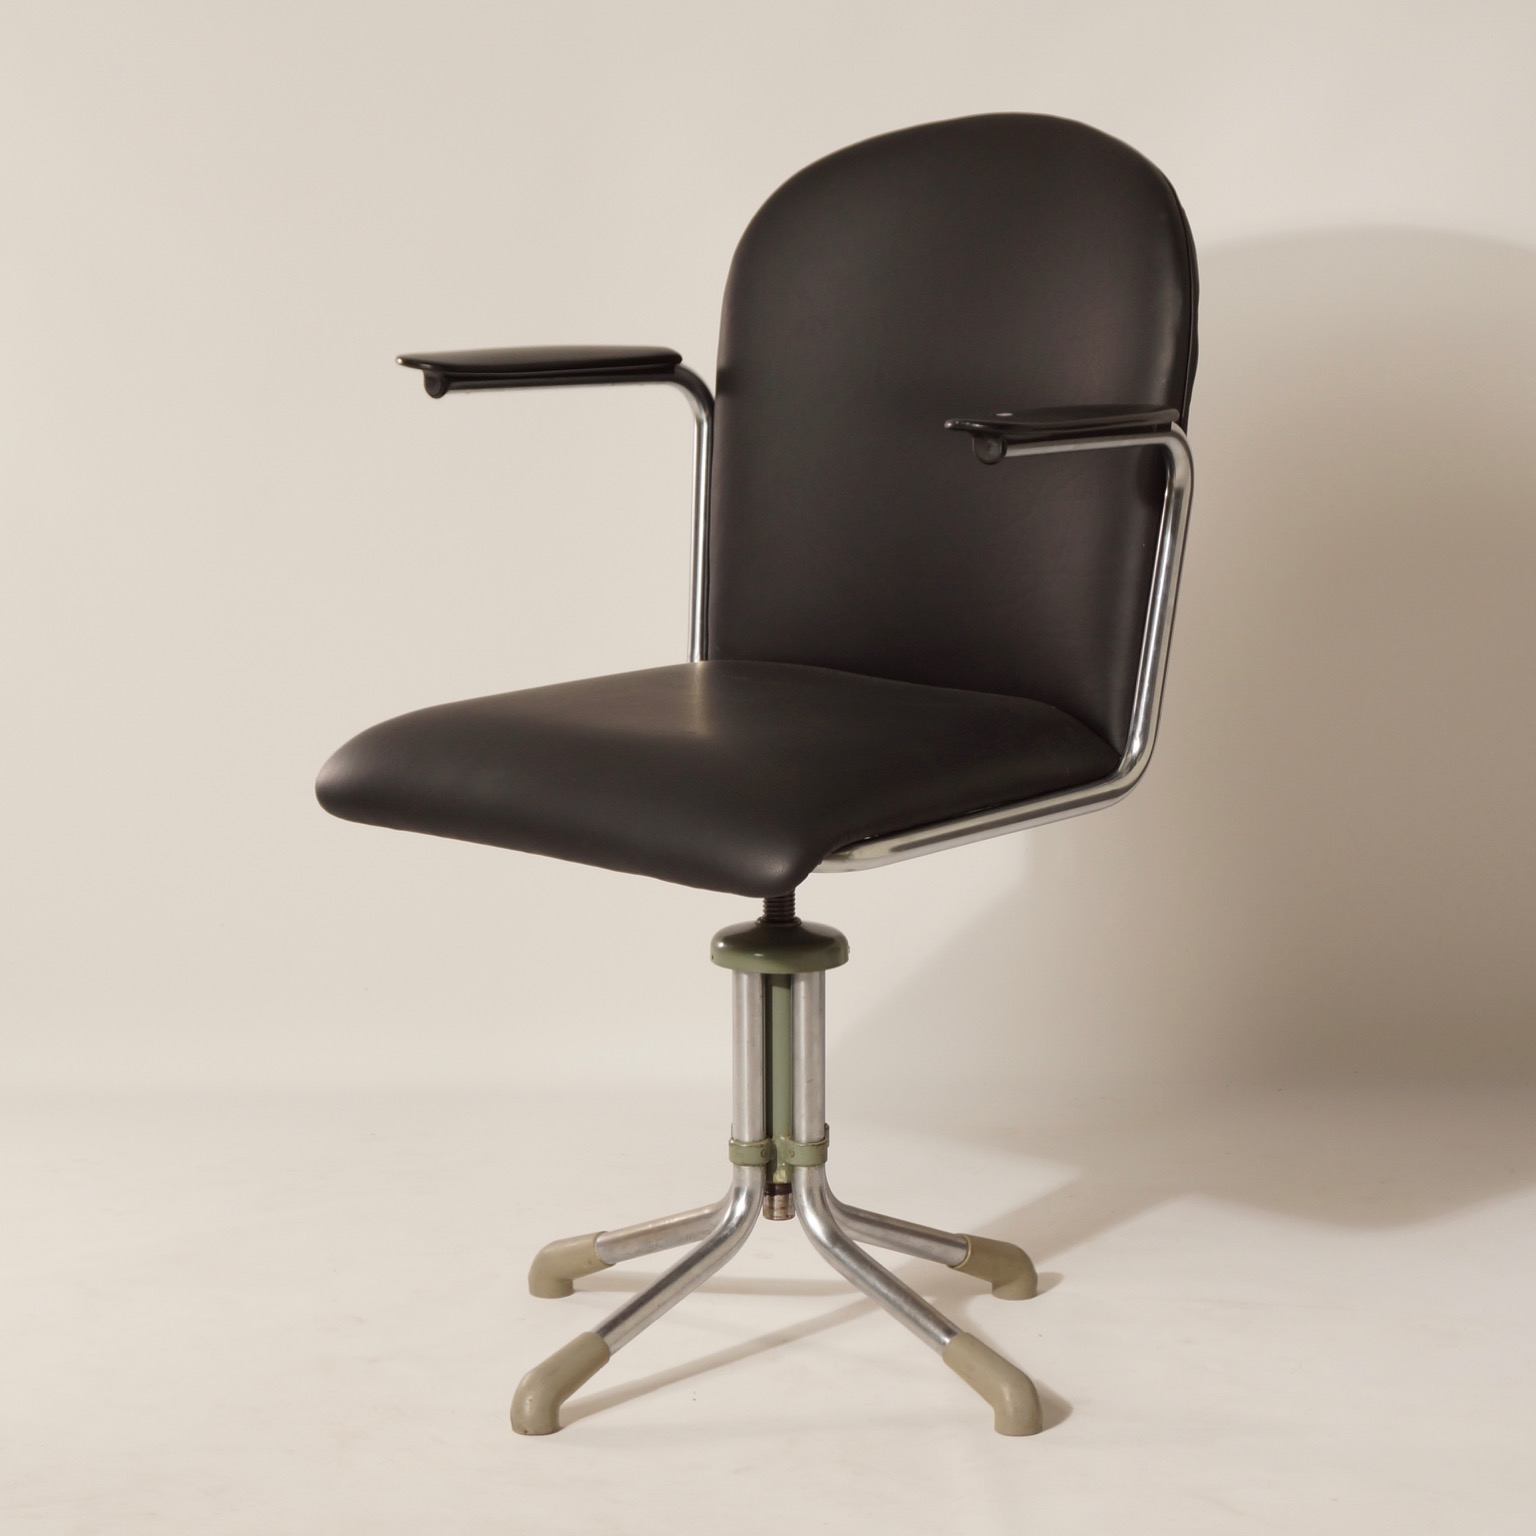 Incredible 356 Desk Chair In Black Leather By W H Gispen 1950S Ncnpc Chair Design For Home Ncnpcorg